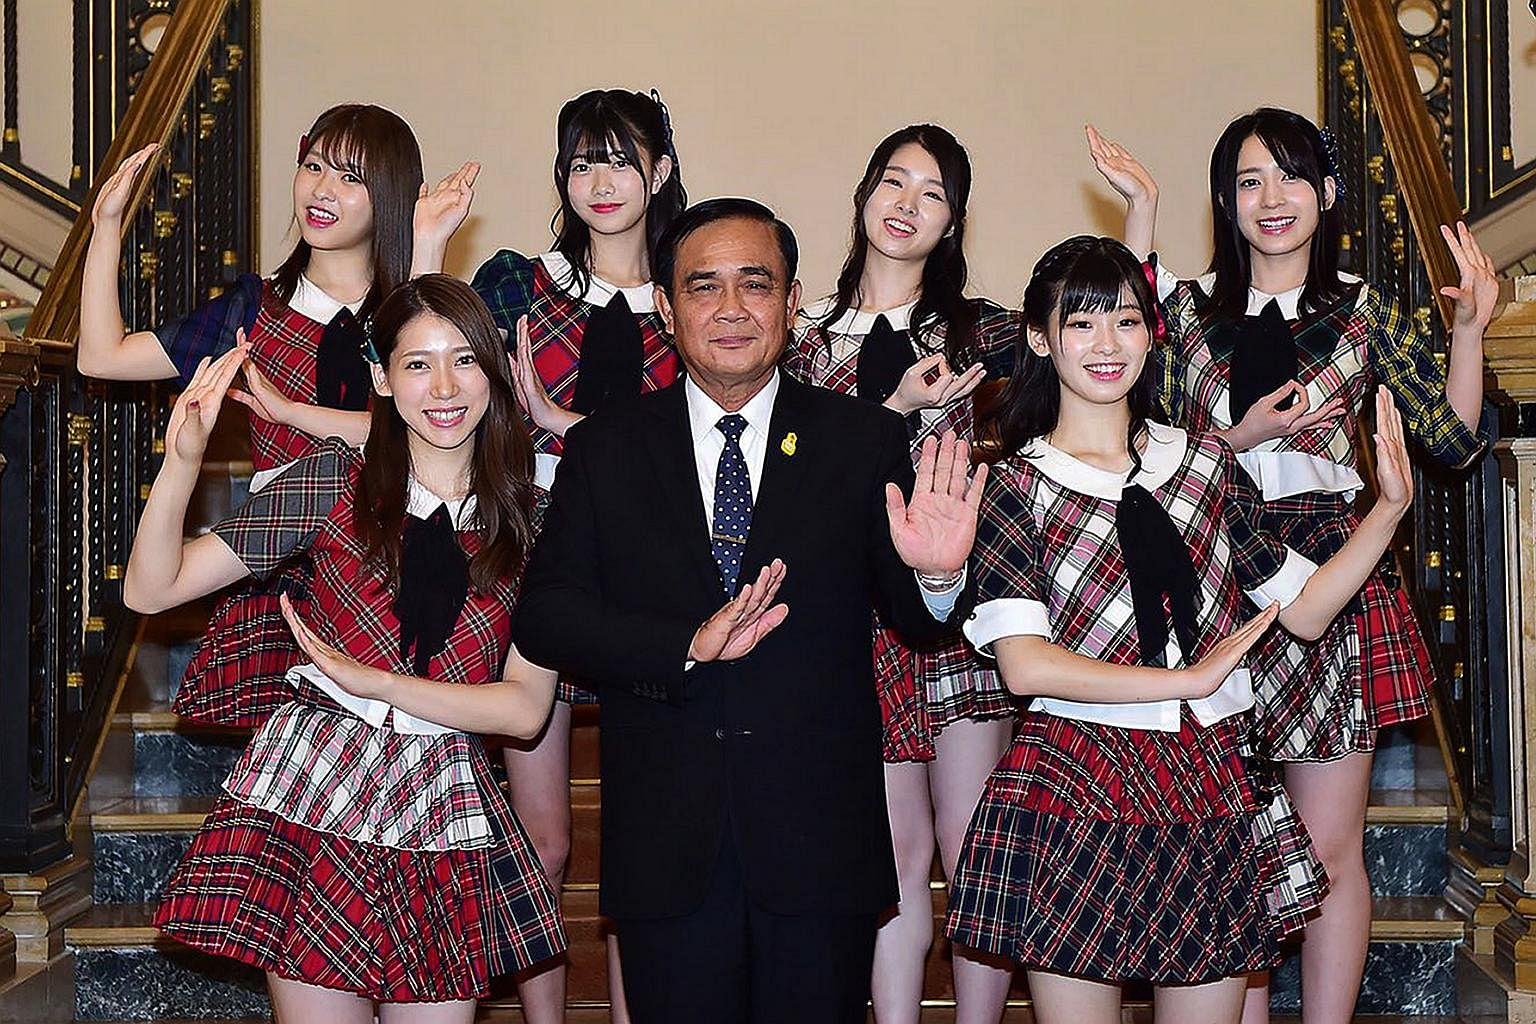 Thai Pm Prayut Hosts J Pop Girl Group Akb48 In Move Seen As Attempt